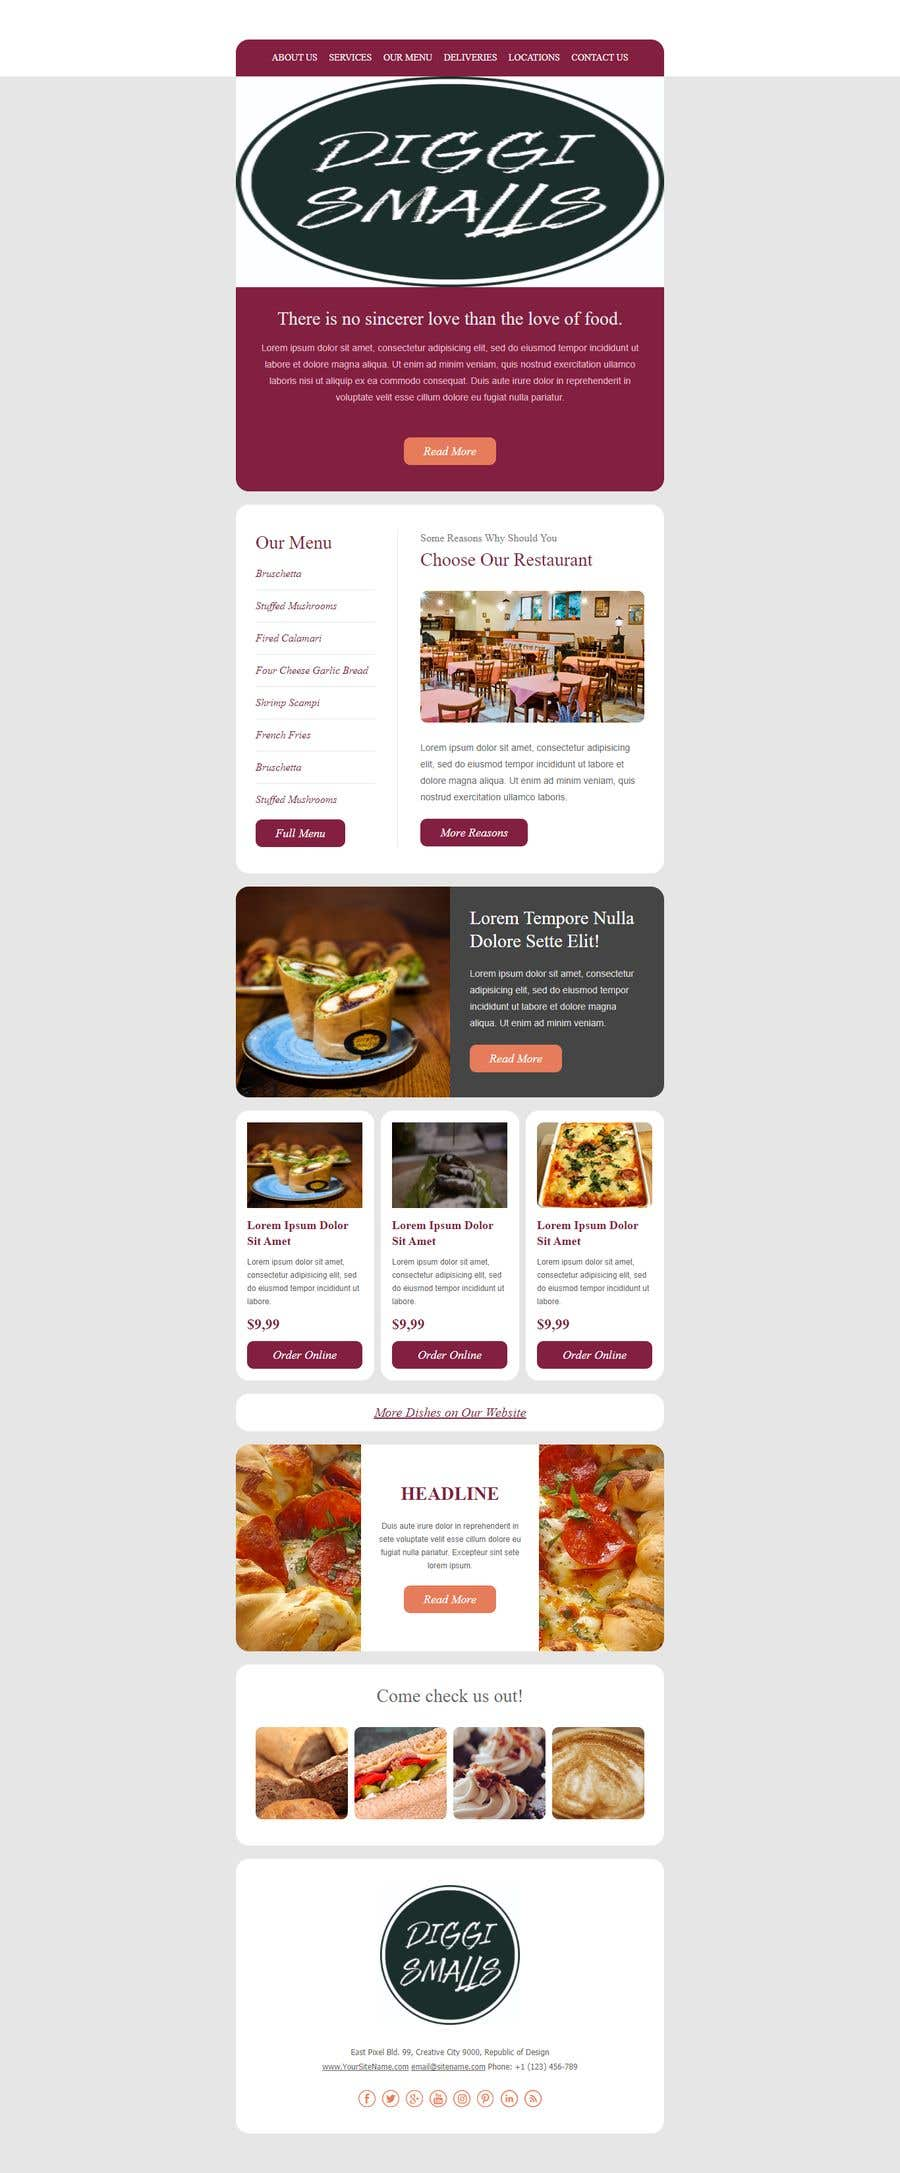 Konkurrenceindlæg #                                        15                                      for                                         Create a HTML email template design and set it up on Klaviyo